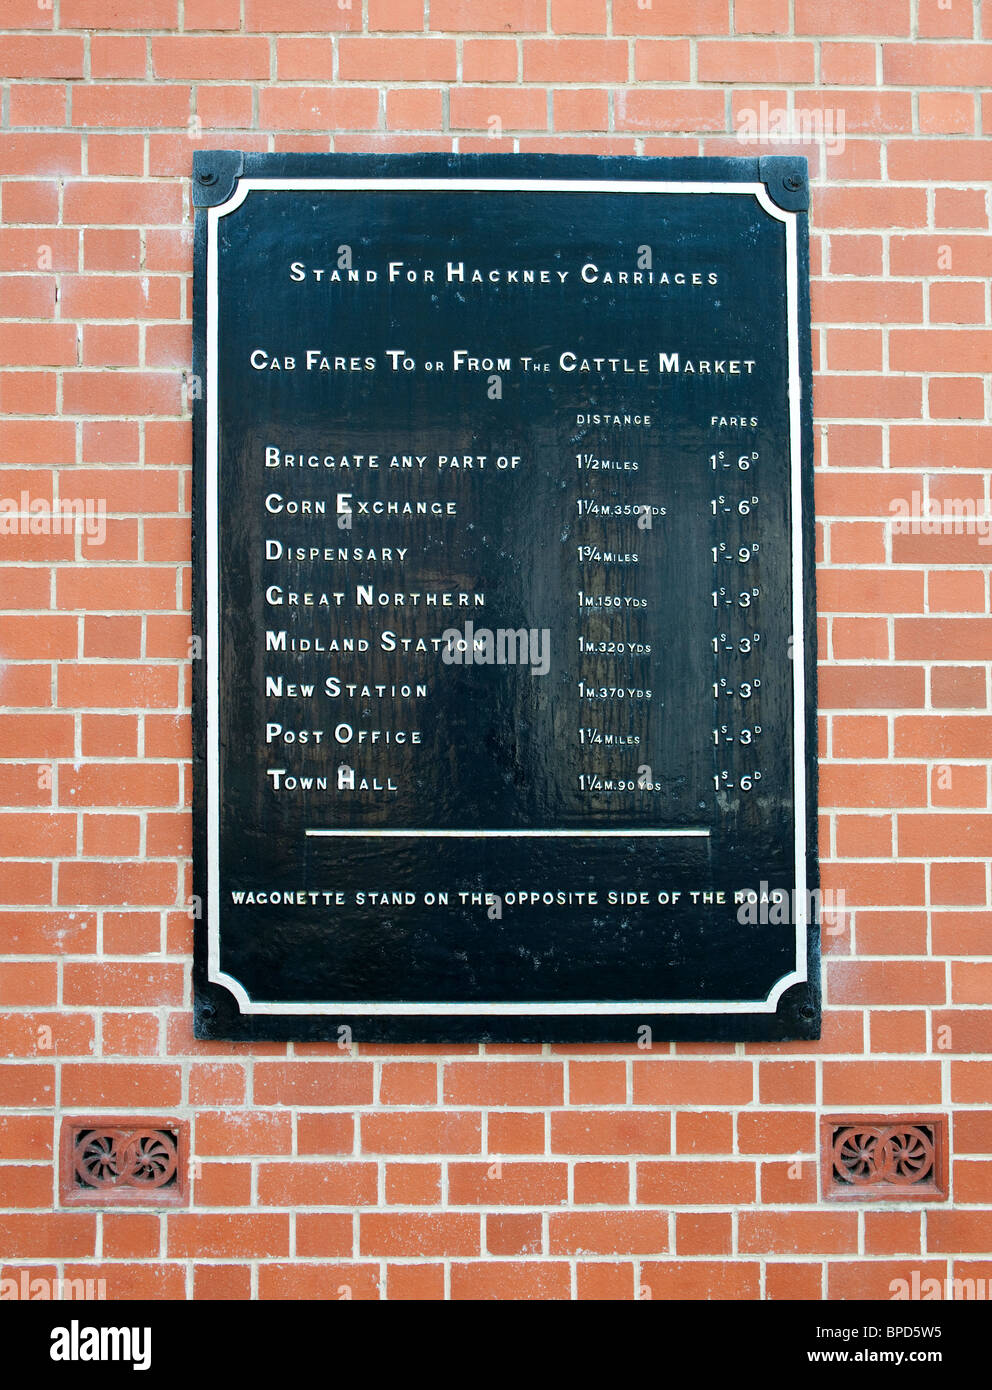 Old Hackney Carriage stand sign at the Blists Hill Victorian Town in Ironbridge, showing prices for local destinations - Stock Image